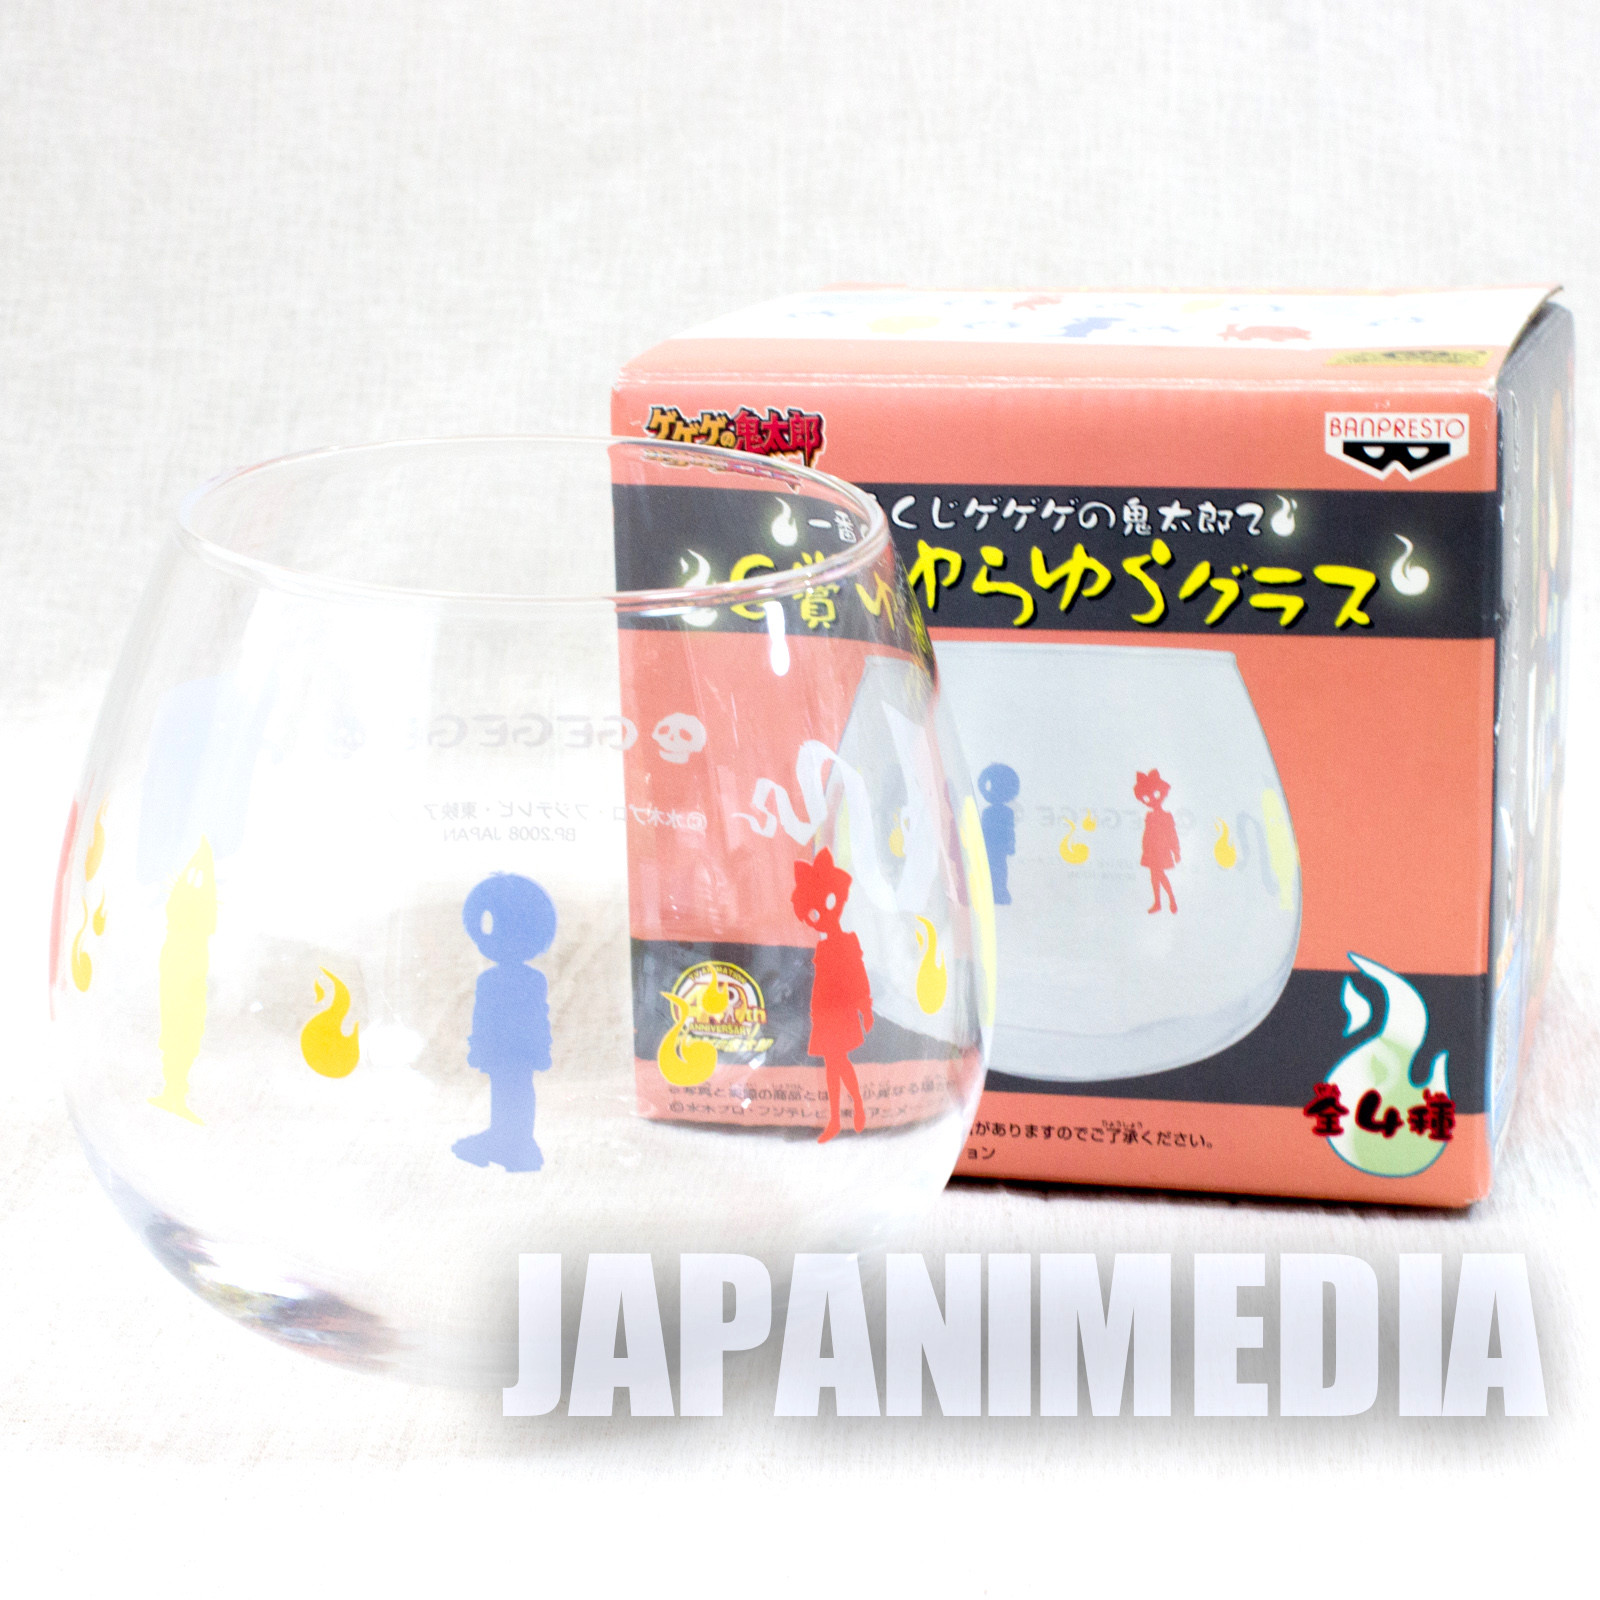 Gegege no Kitaro Yokai Team Yura-Yura Swing Glass JAPAN ANIME